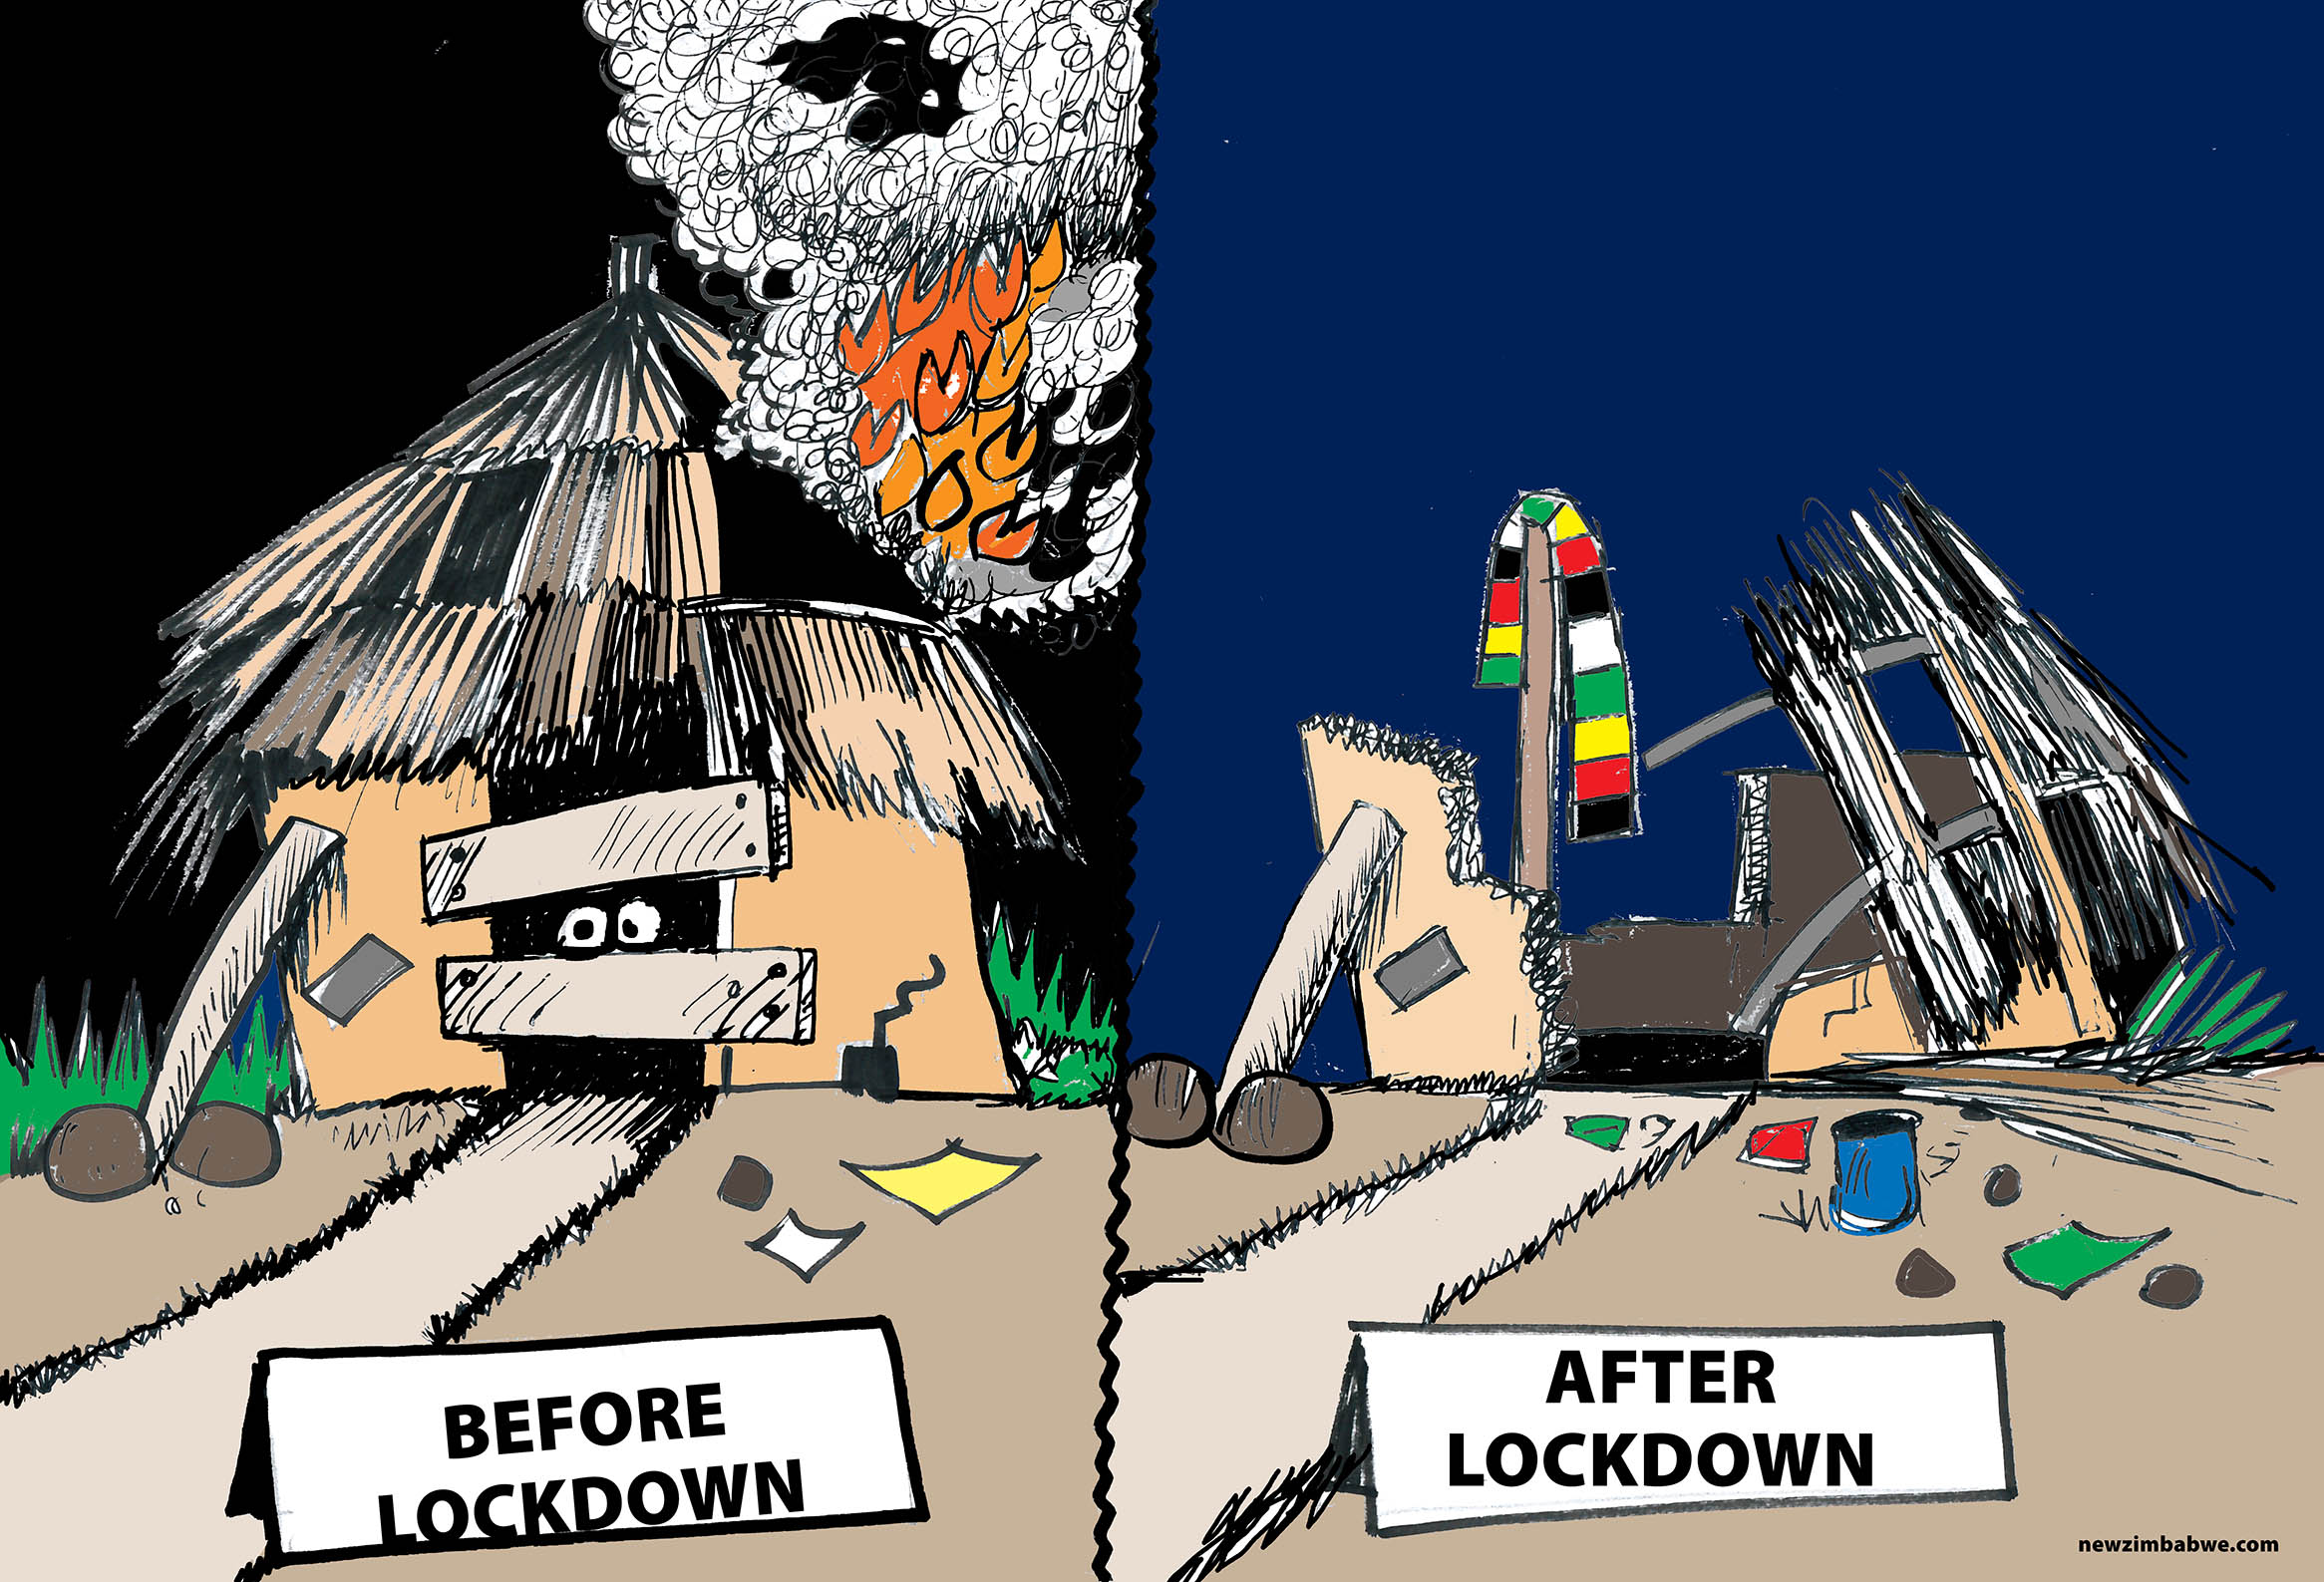 Zim before and after lockdown